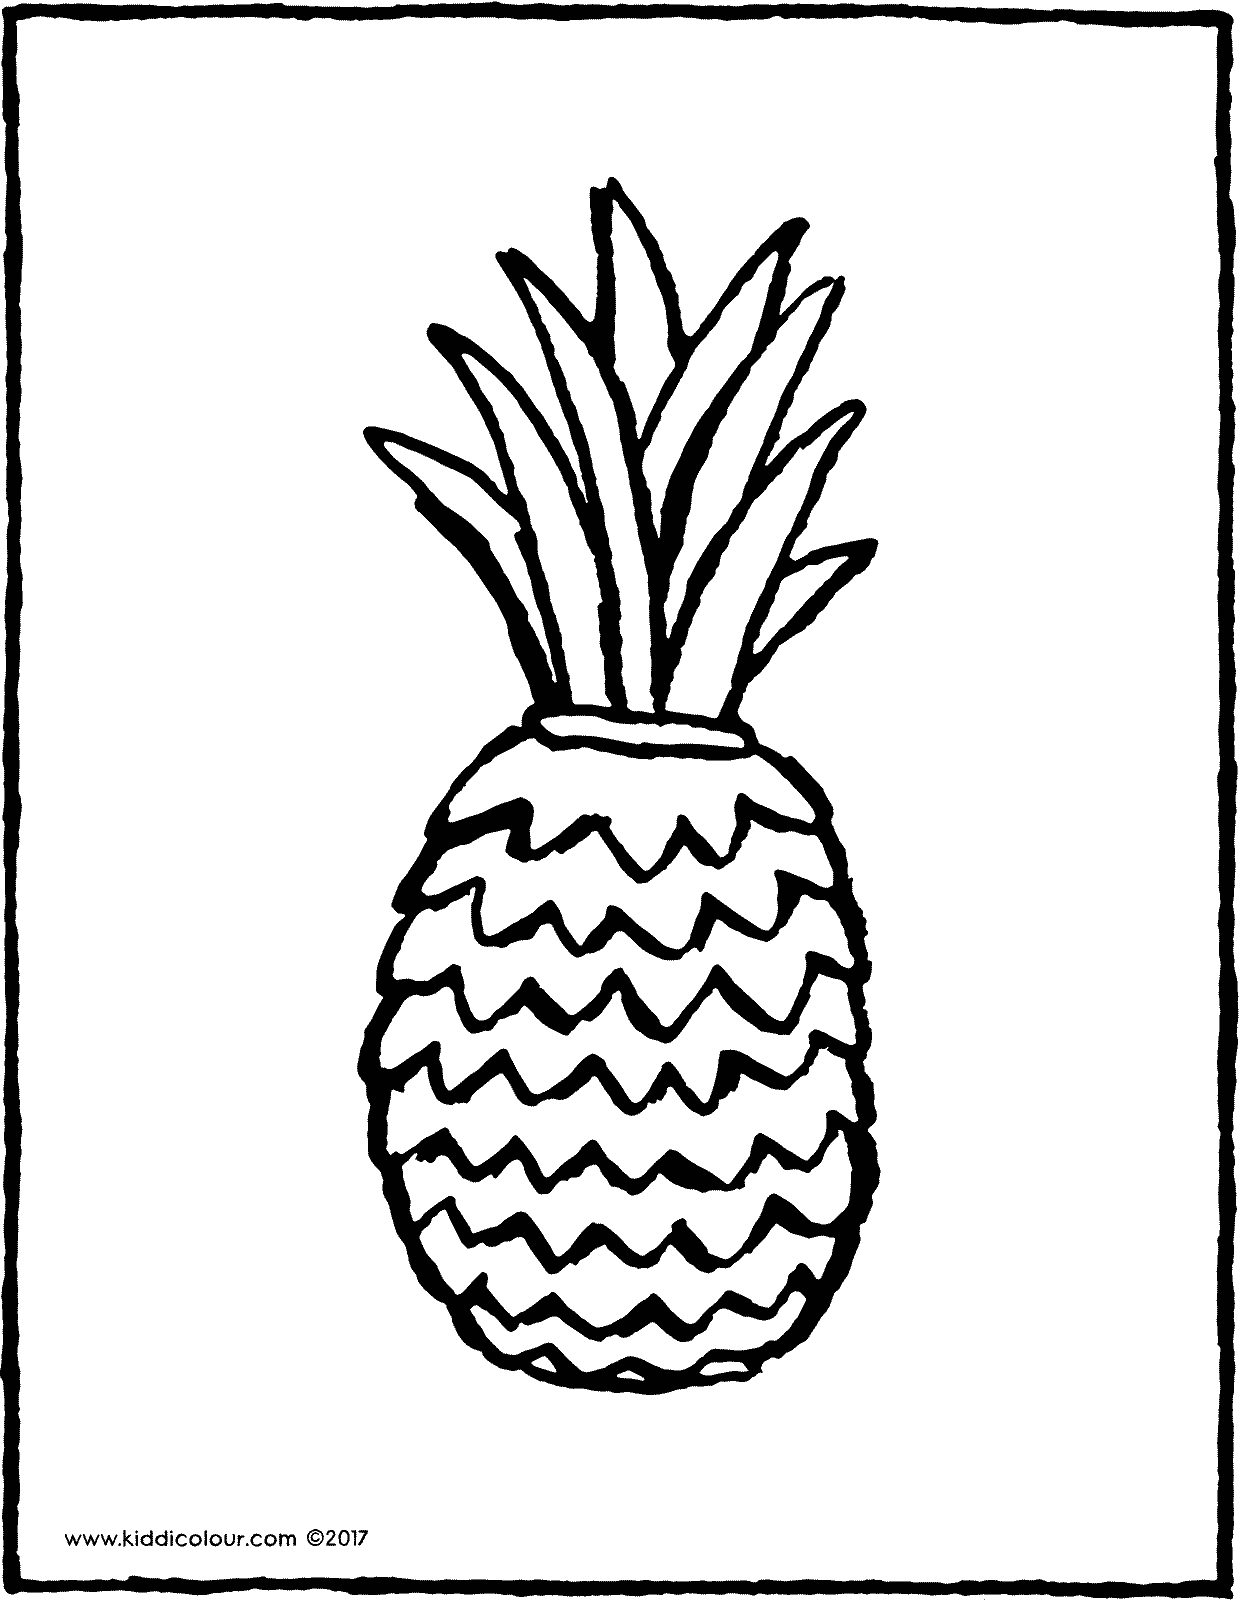 pineapple colouring picture dotted pattern pineapple coloring page dotted pattern picture pineapple colouring